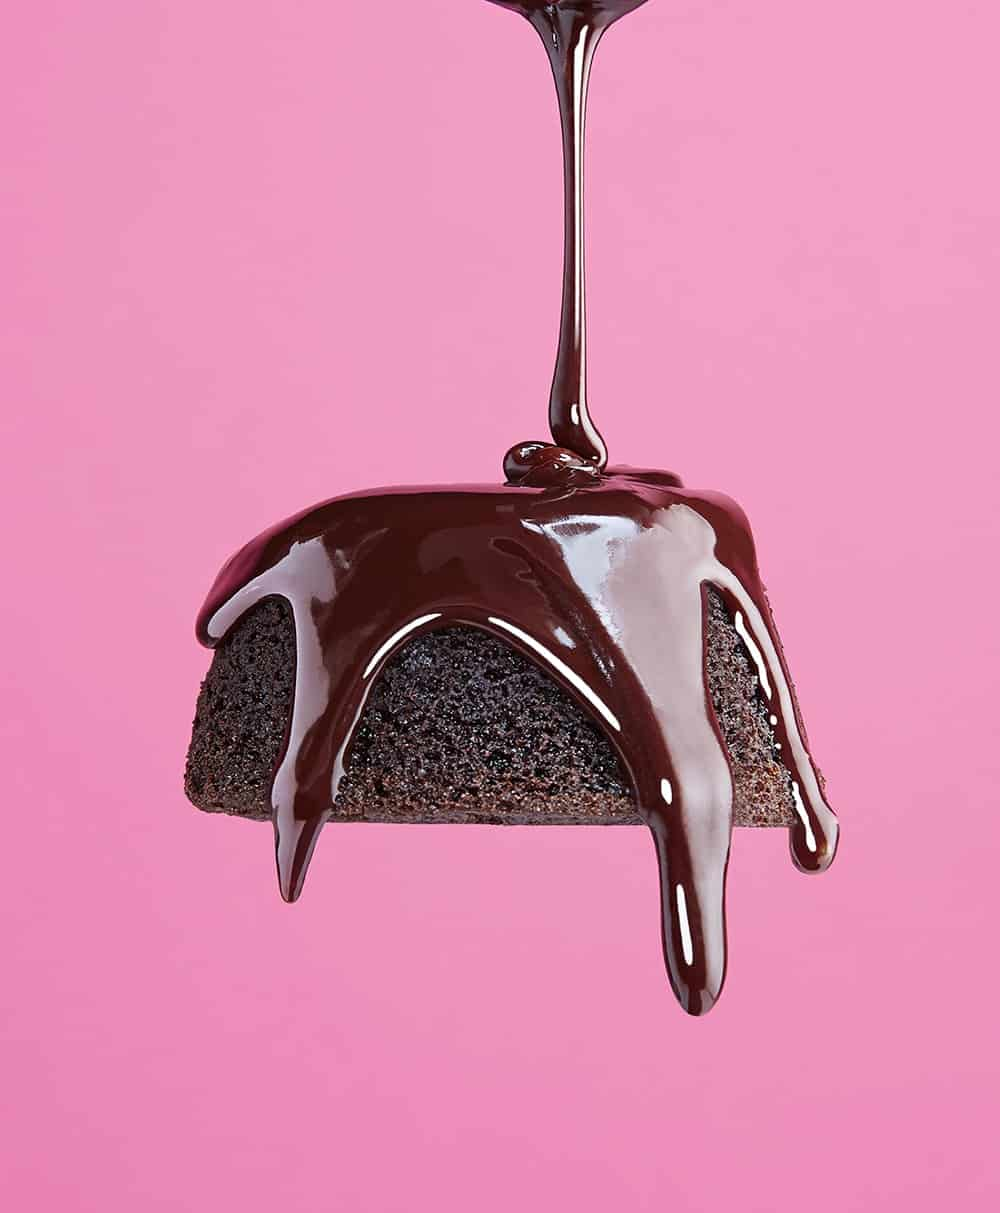 GFF (Gluten Free Forever) Magazine Feature, Chocolate Ganache